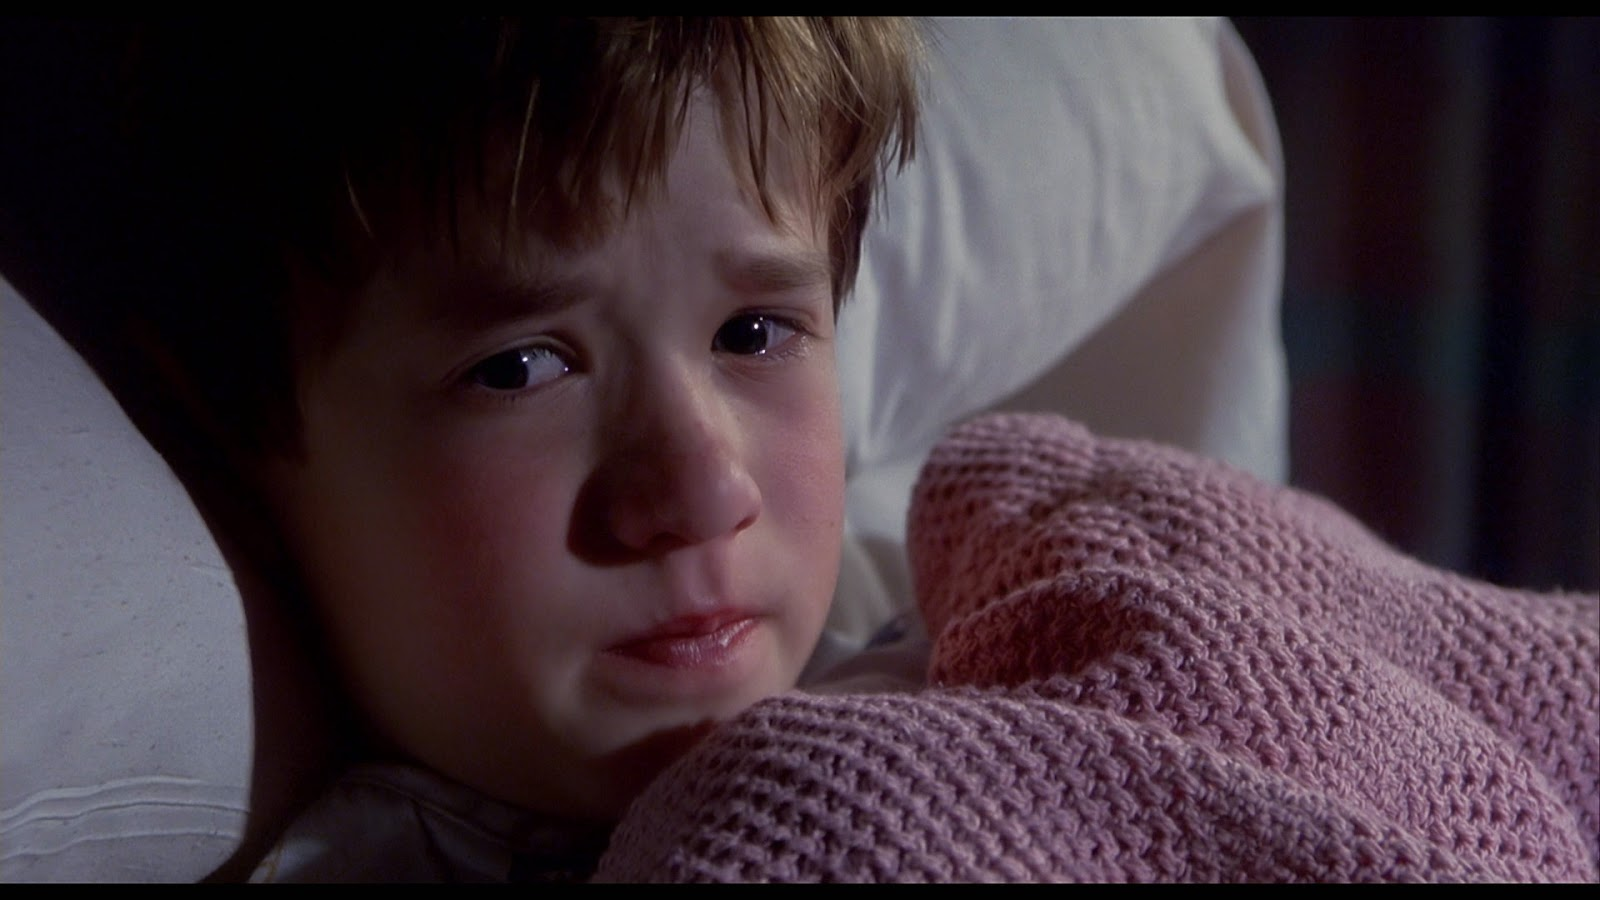 Review dan Sinopsis Film The Sixth Sense (1999)